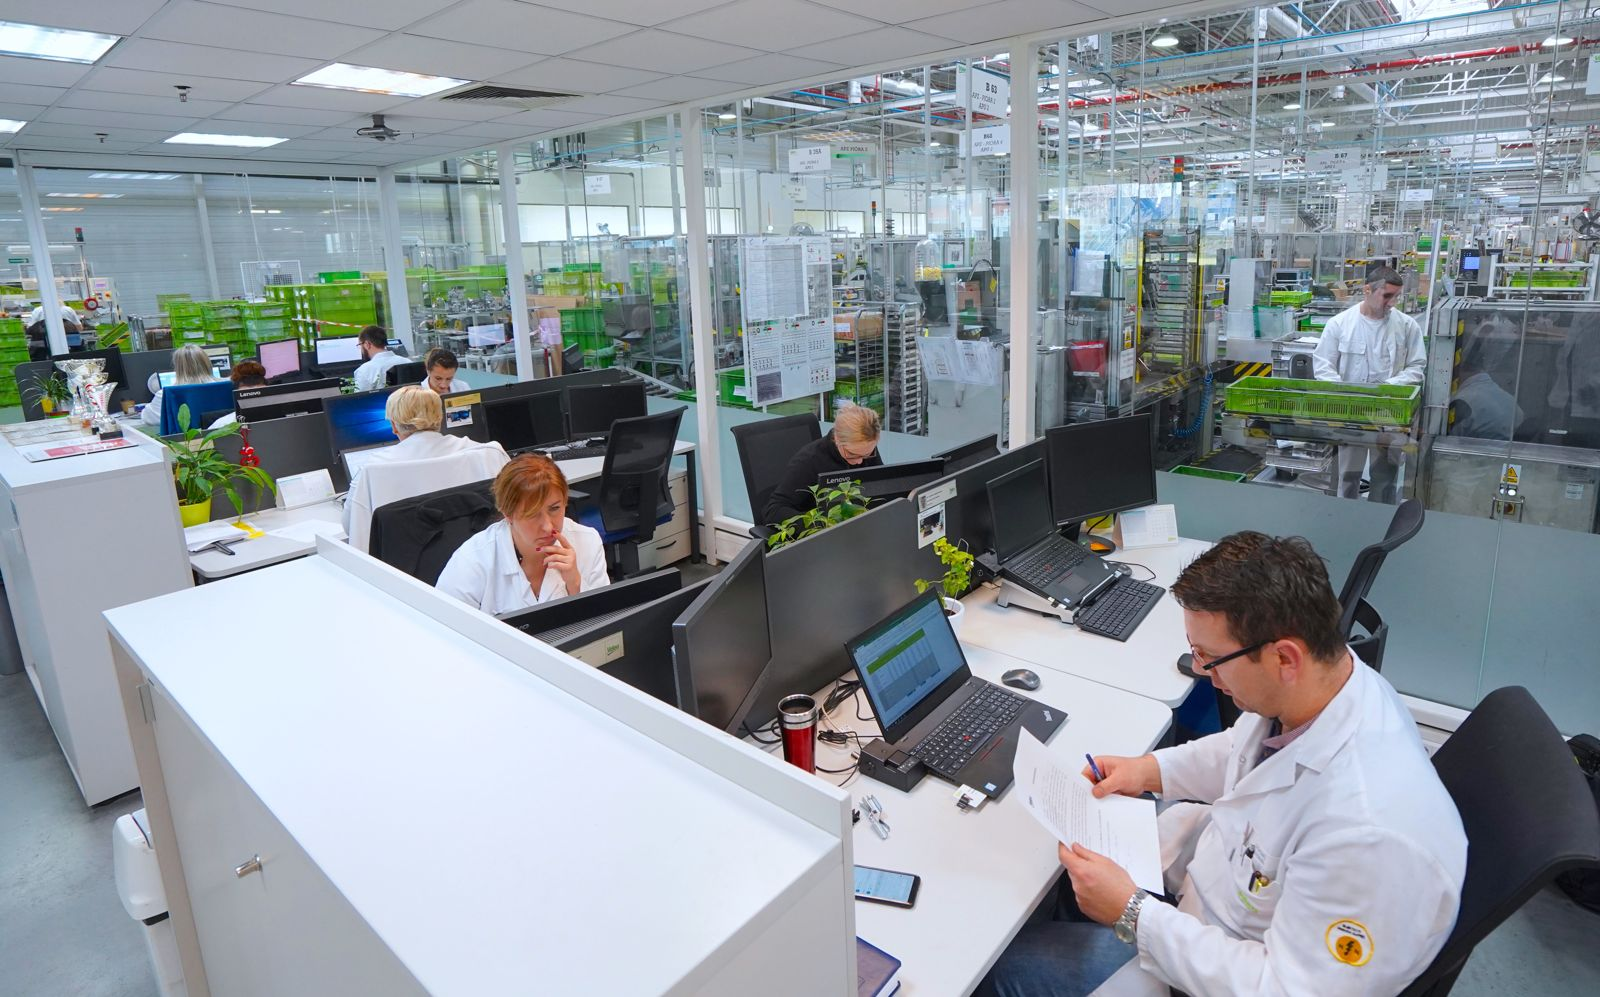 Valeo employees in shared office in Poland Skawina plant